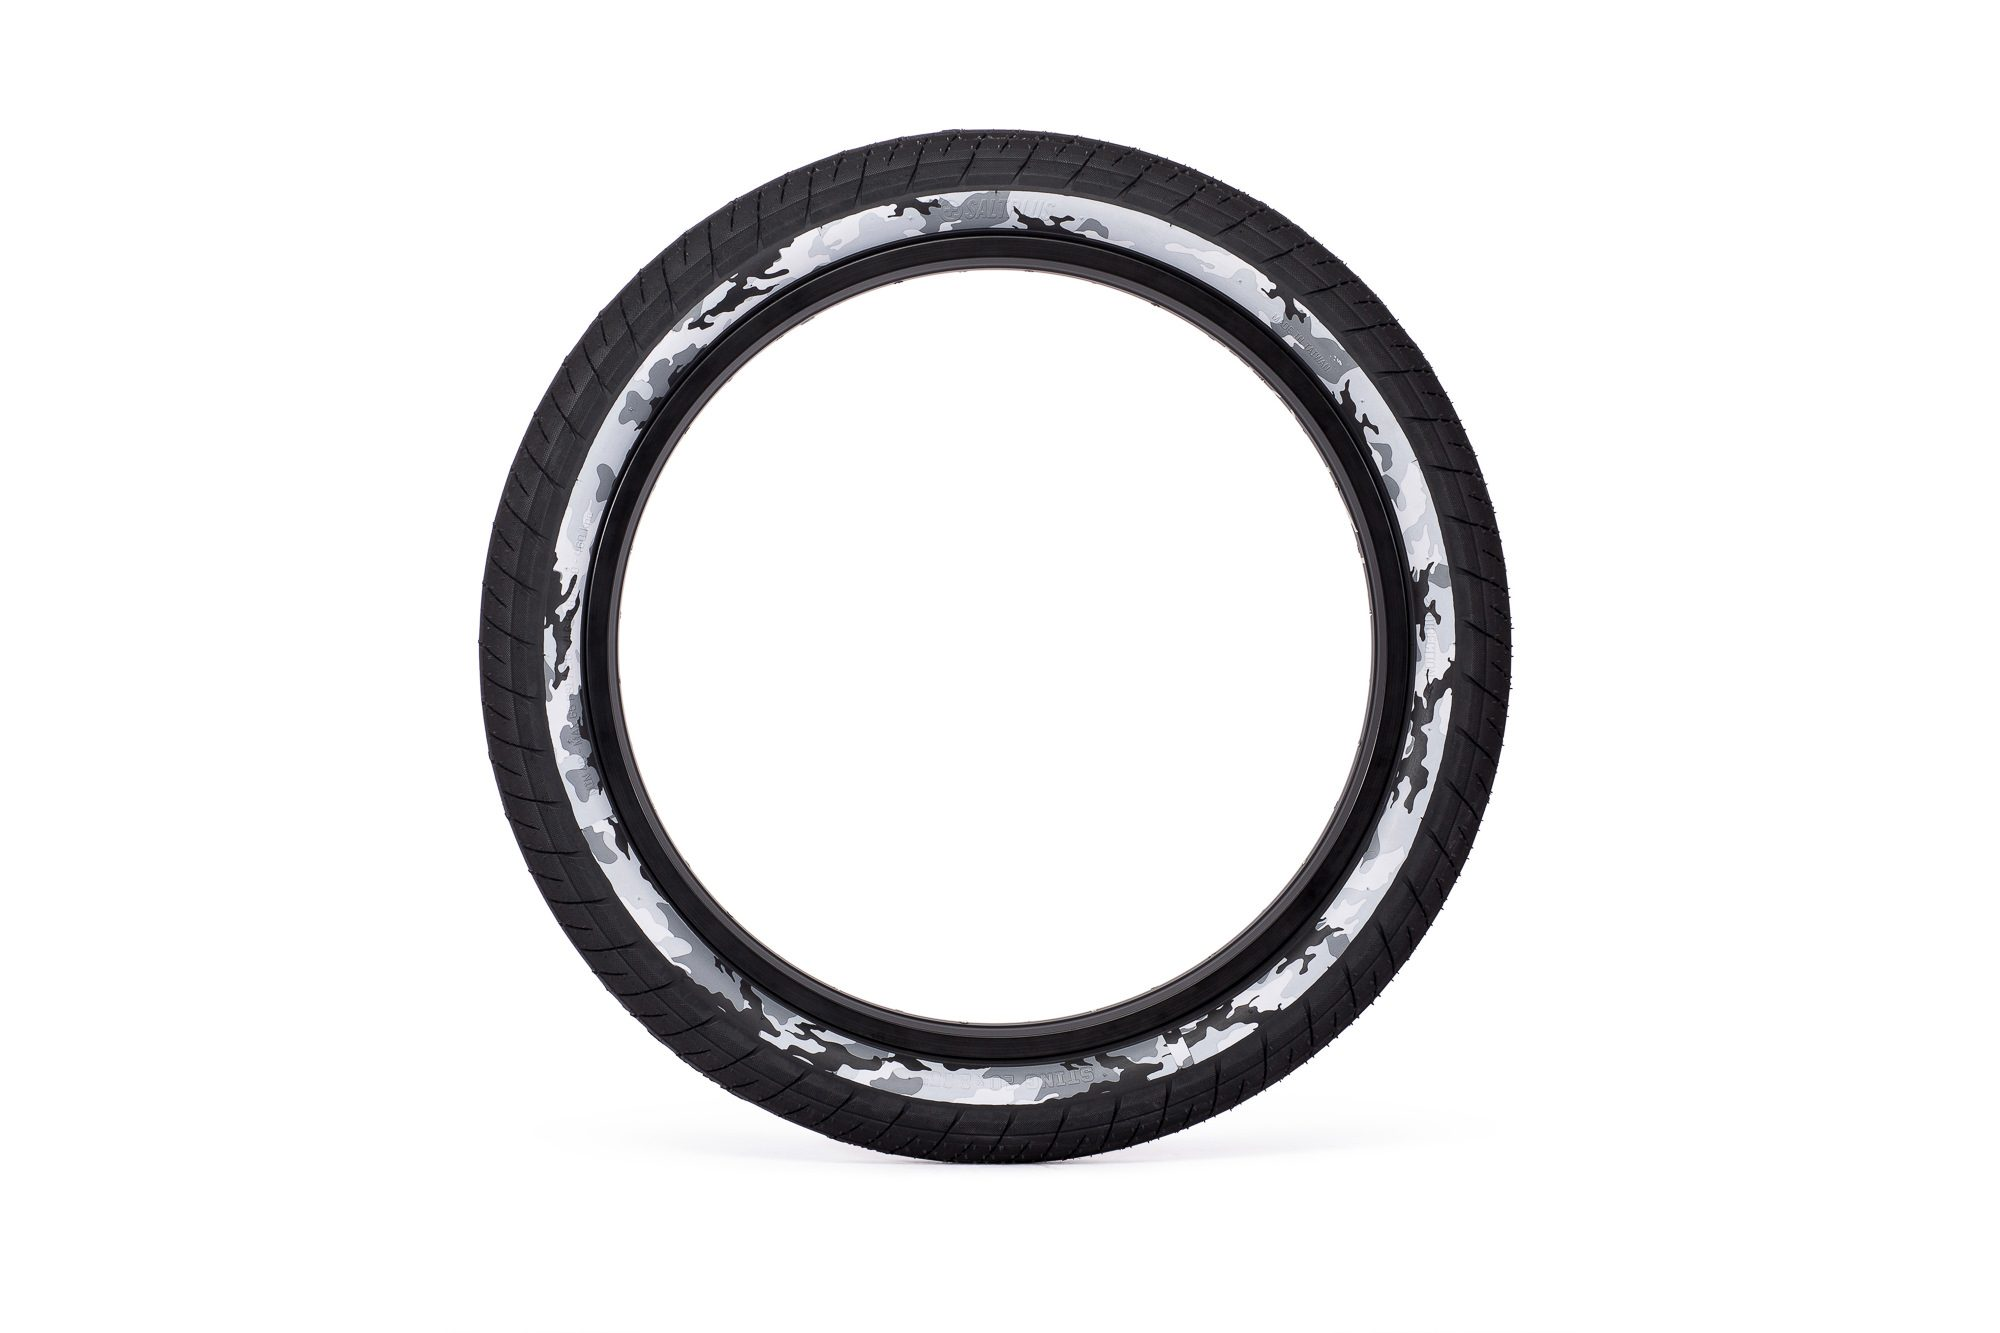 SaltPlus_Sting_tire_black_snow_camo-01